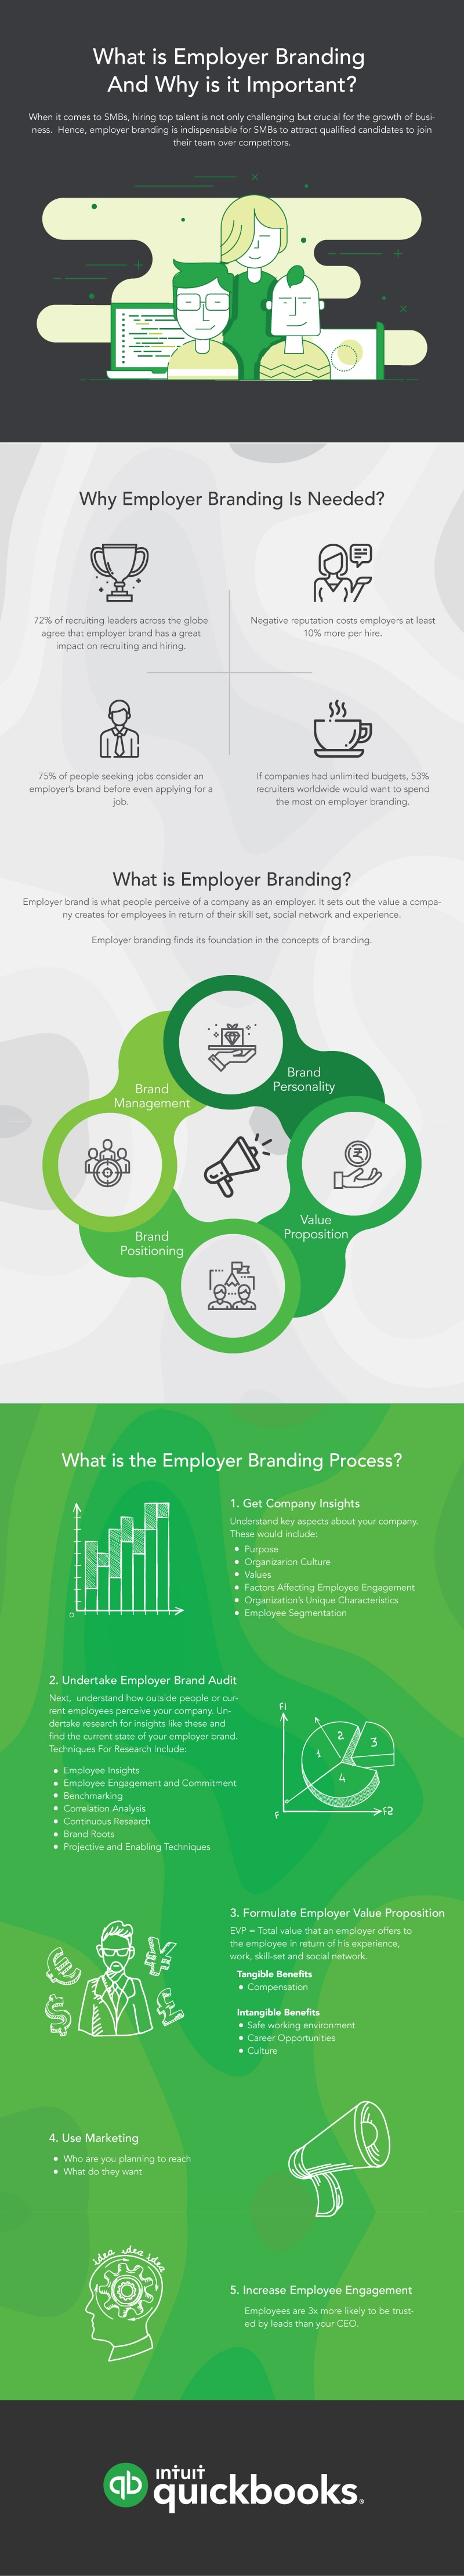 What is Employer Branding and Why is it Important?